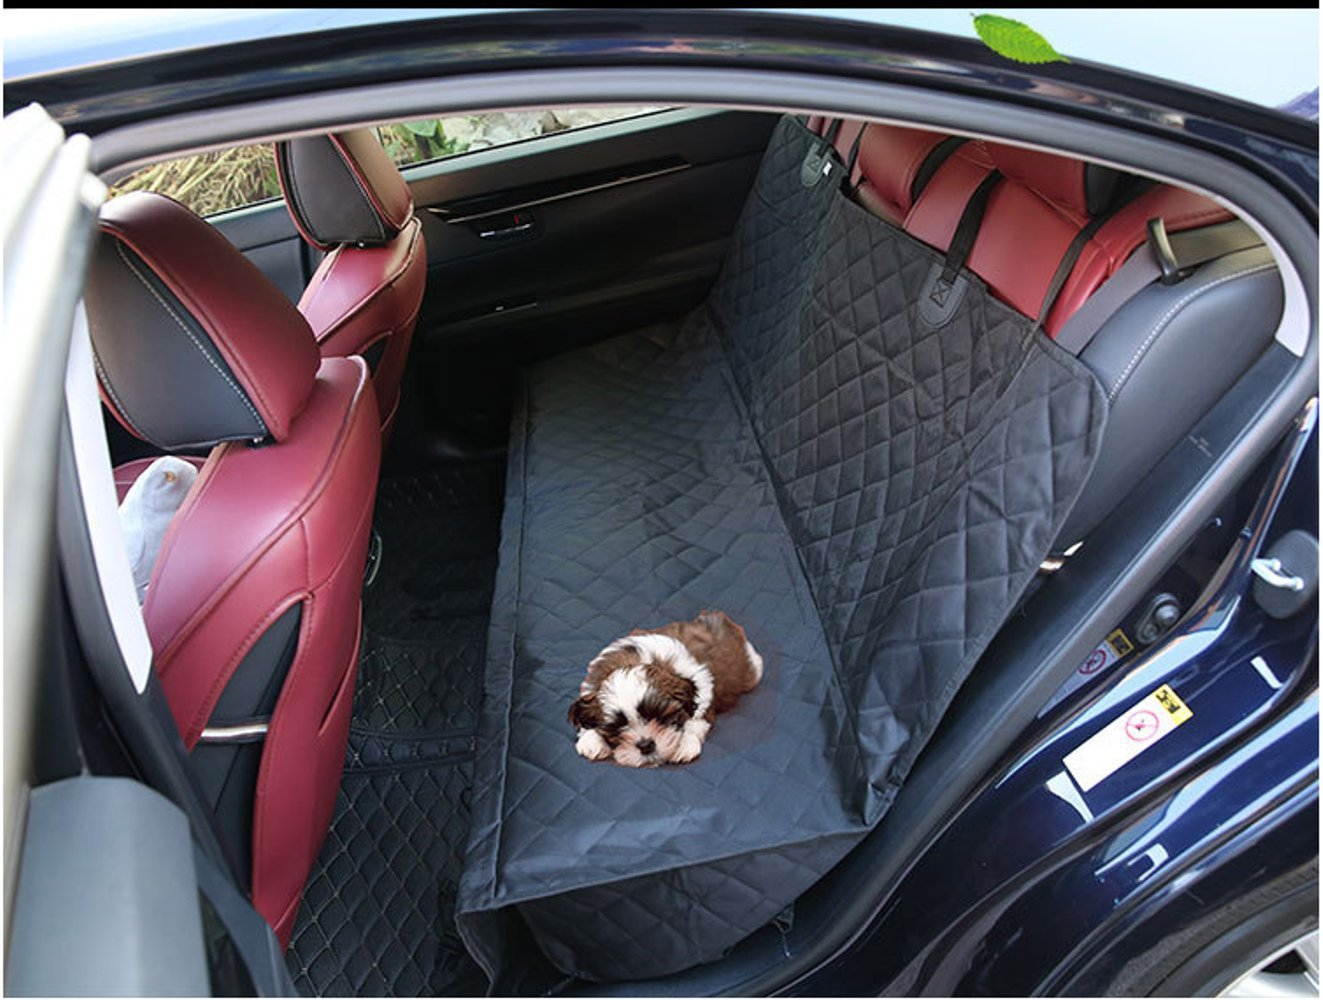 Dogs Cat Seat Covers Hammock for Car Trucks and SUV with Oxford Cloth Black Waterproof Washable Nonslip